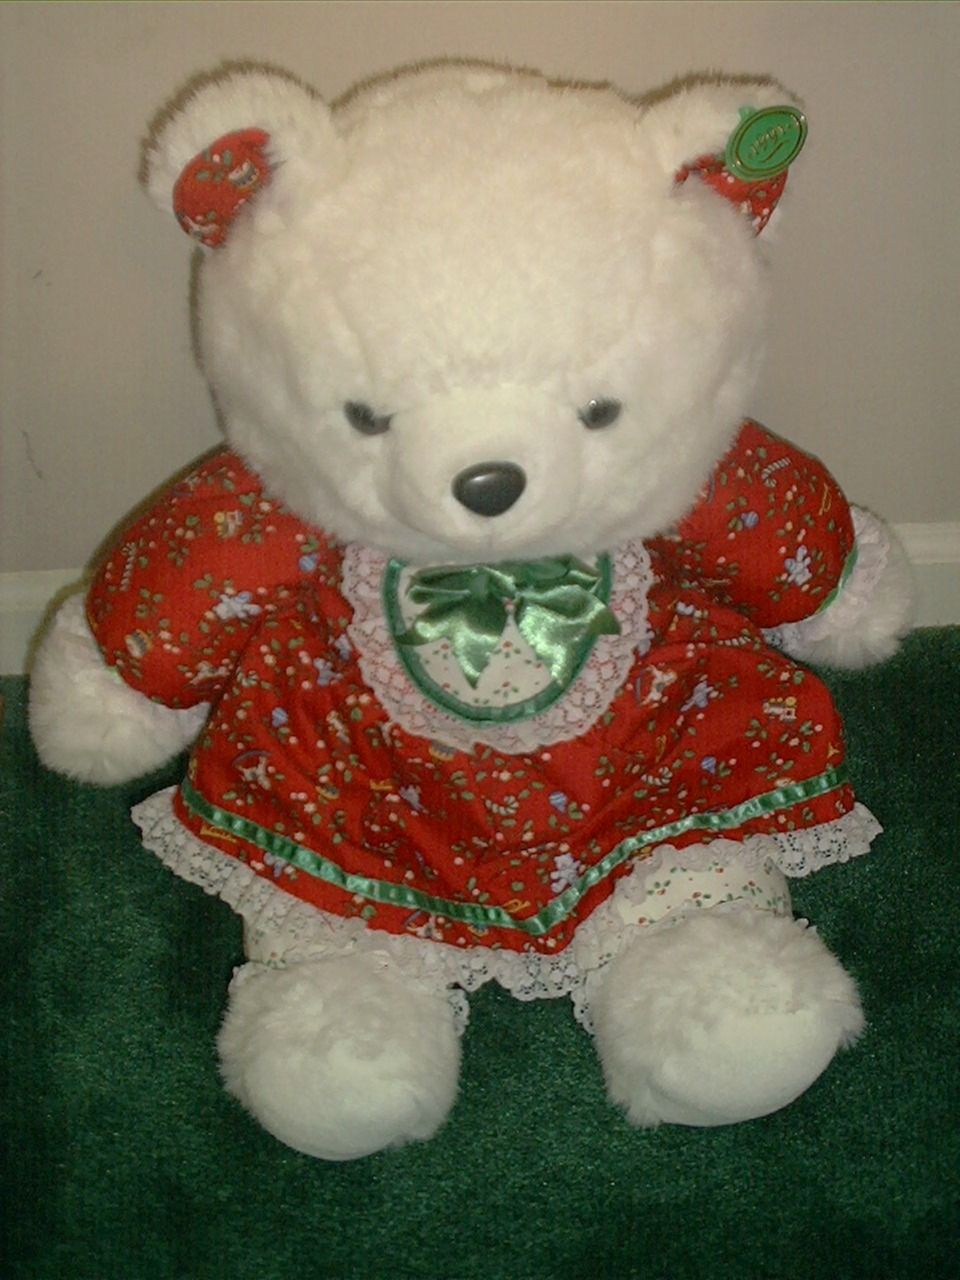 1991 Kmart Holiday Collectible Teddy Bear Hello kitty plush